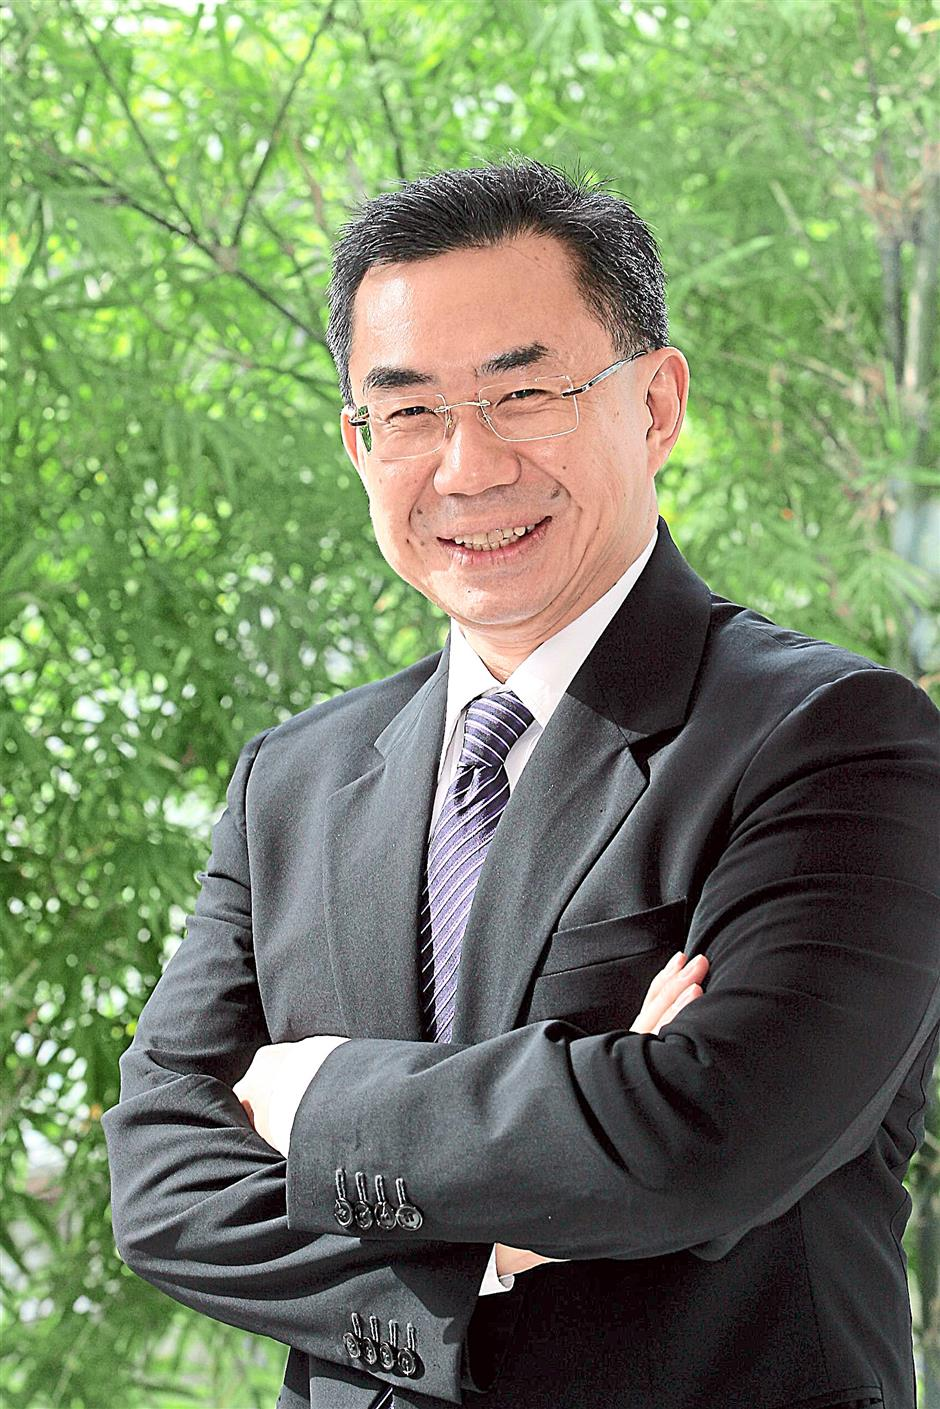 Quill Group of Companies director Datuk Michael Ong.